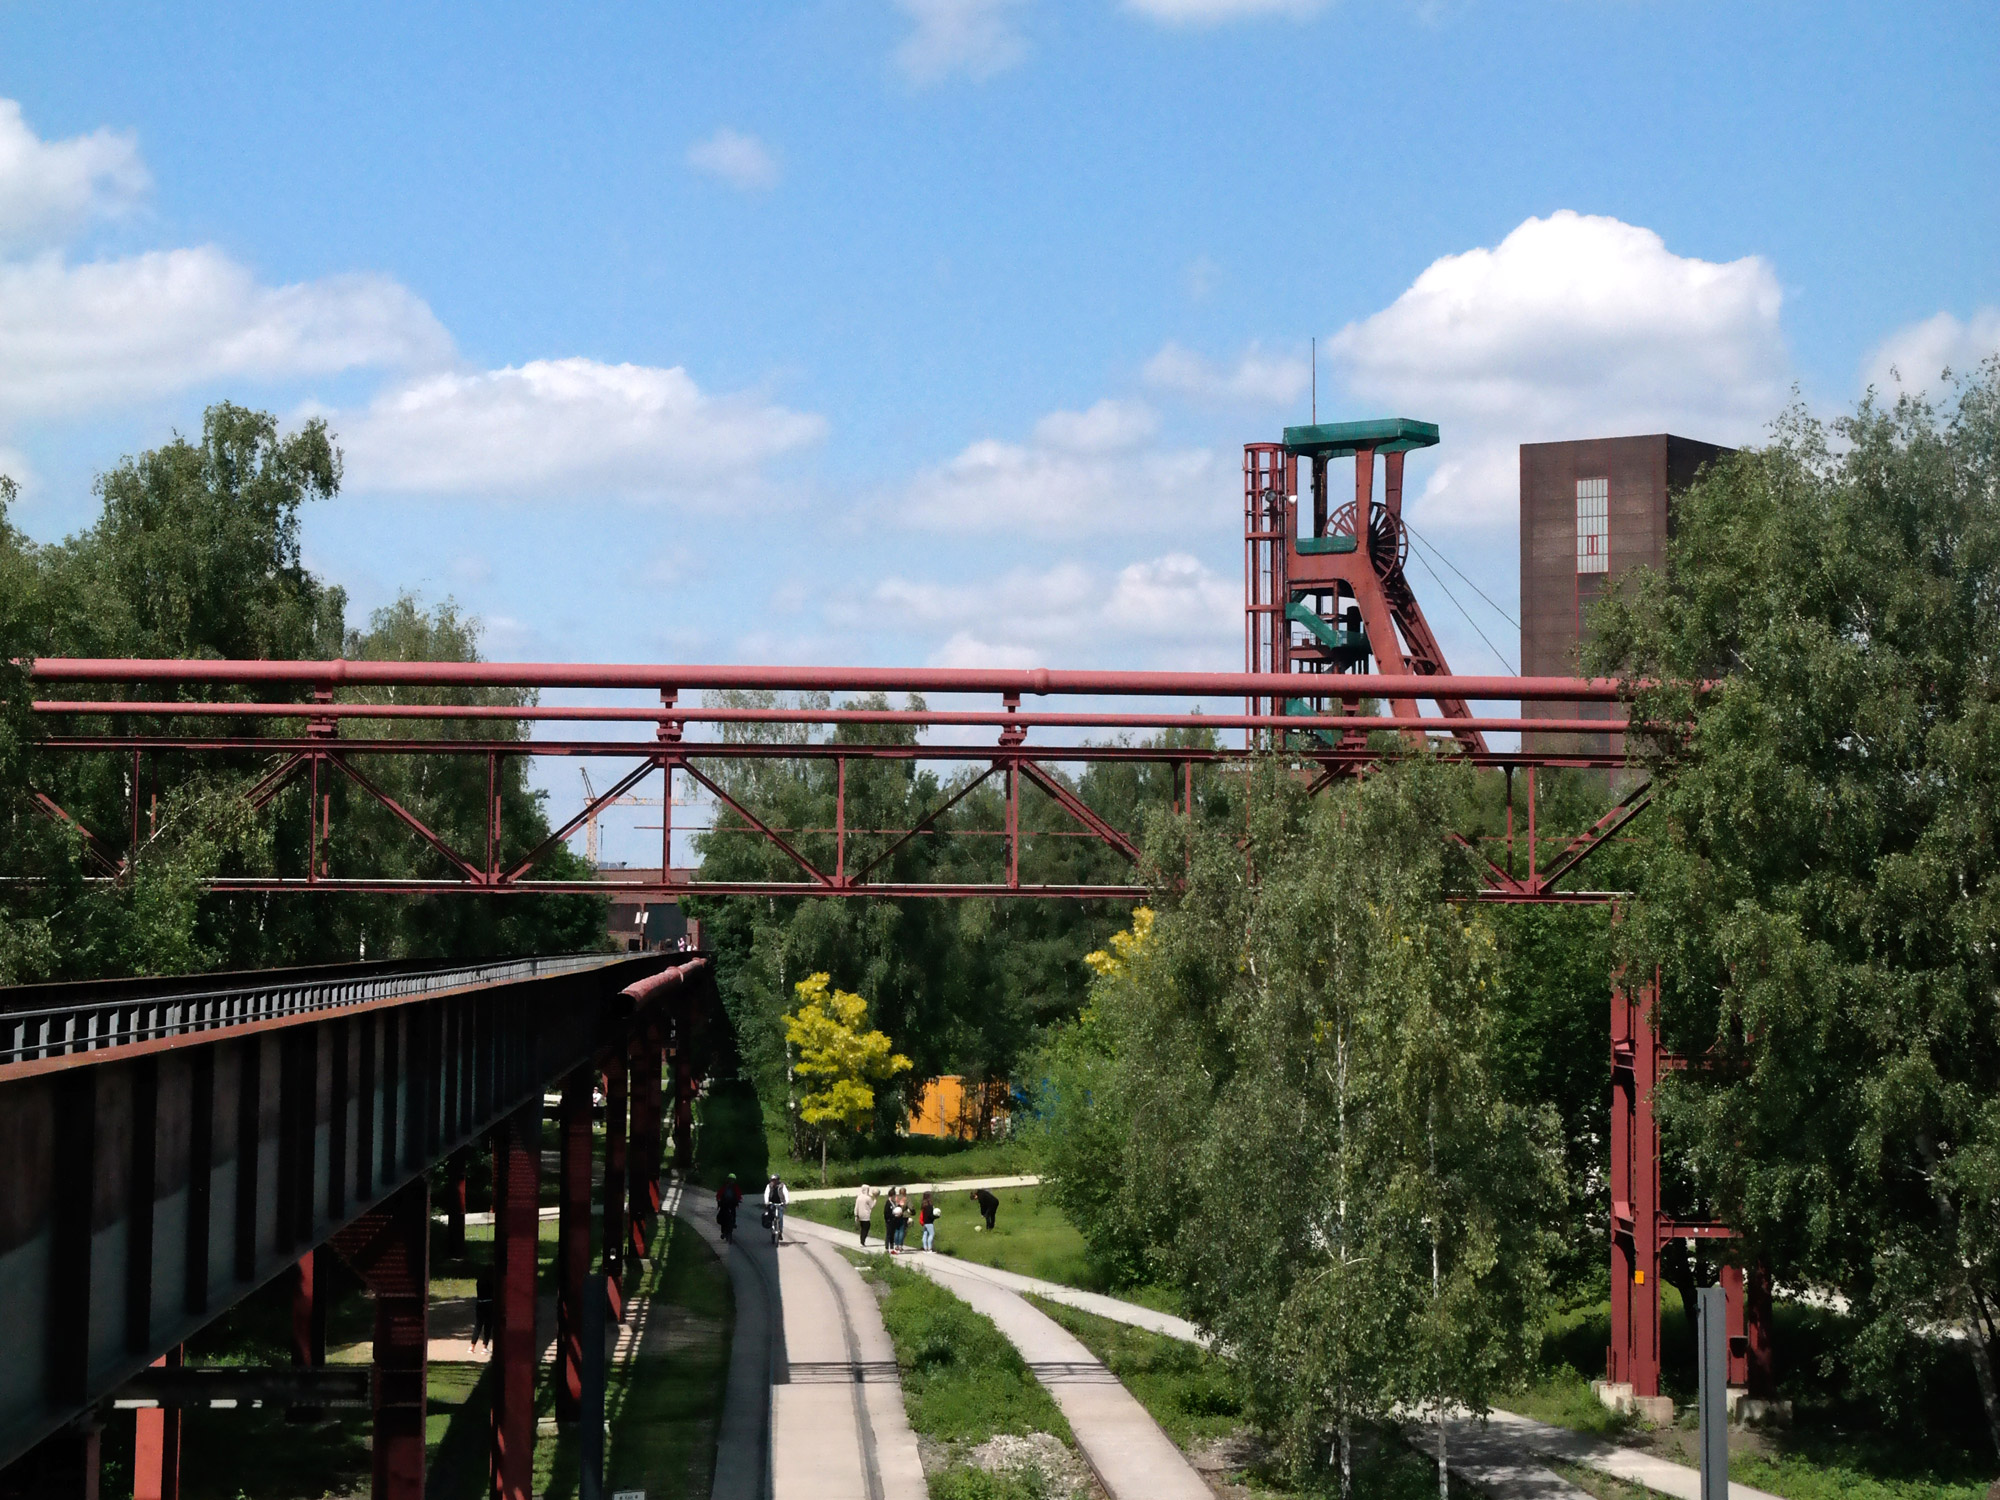 Janna - Zeche Zollverein in Leipzig